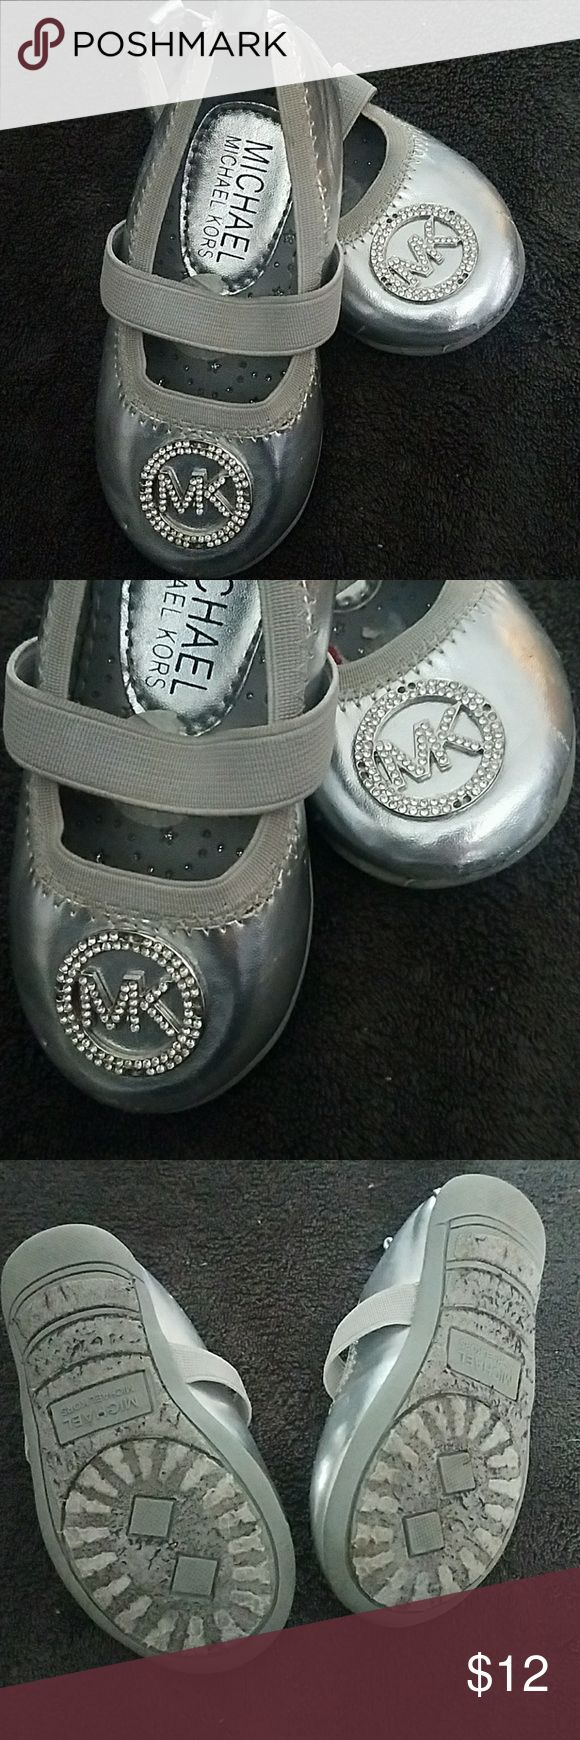 MK Toddler Shoes Very cute Michael Kors silver ballet flats. A few missing rhinestones on both shoes as shown in close up picture. Michael Kors Shoes Baby & Walker